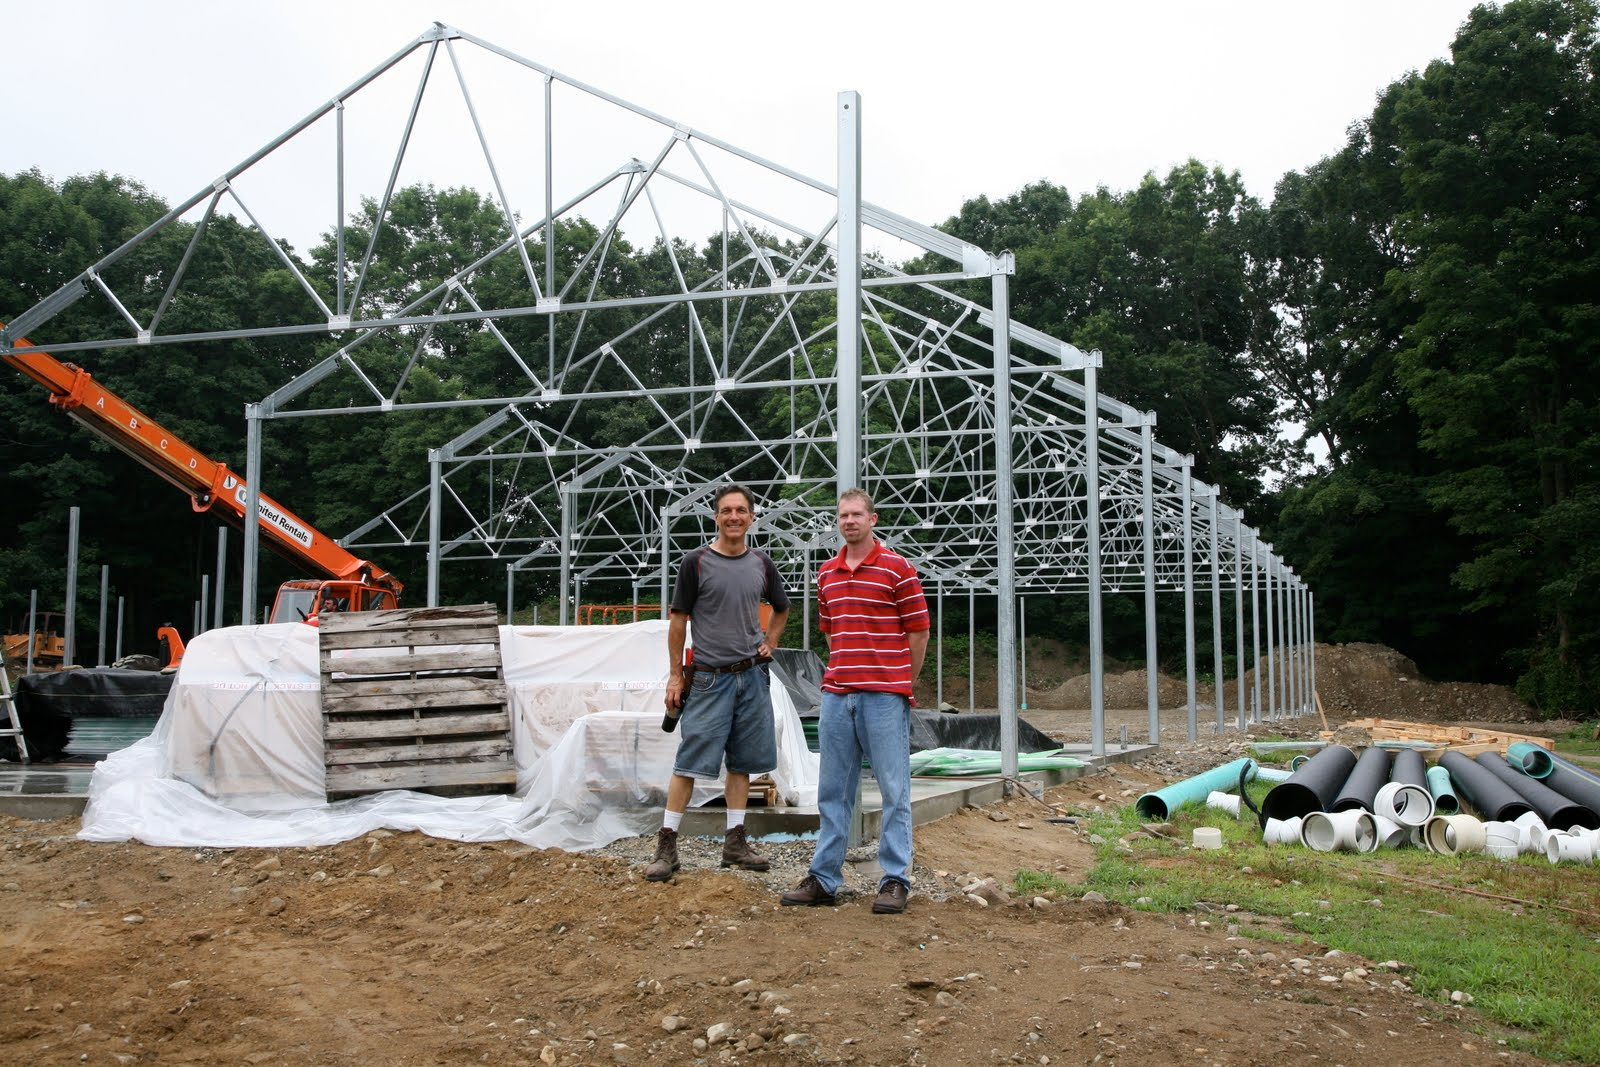 byron and john wells from rimol greenhouses - Rimol Greenhouse Of Photos